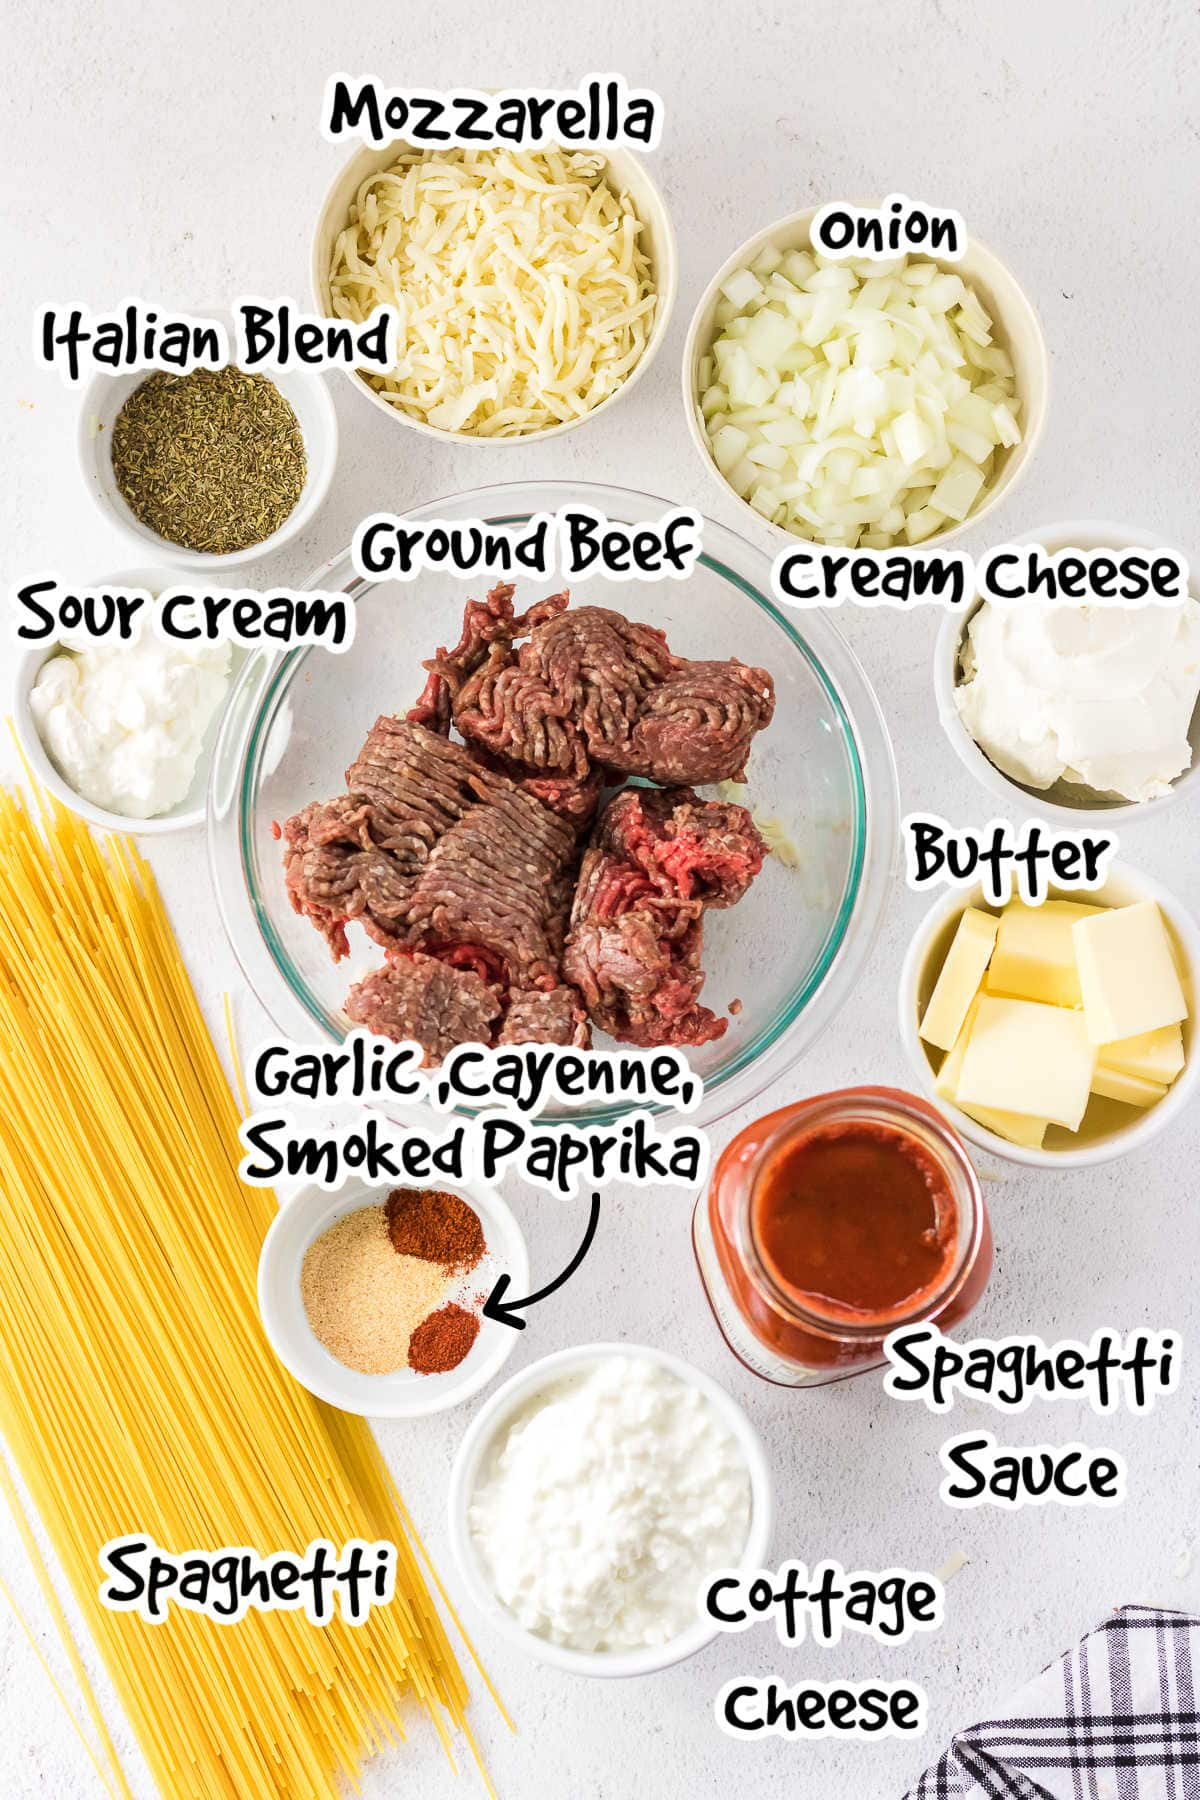 Labeled ingredients for million dollar spaghetti.